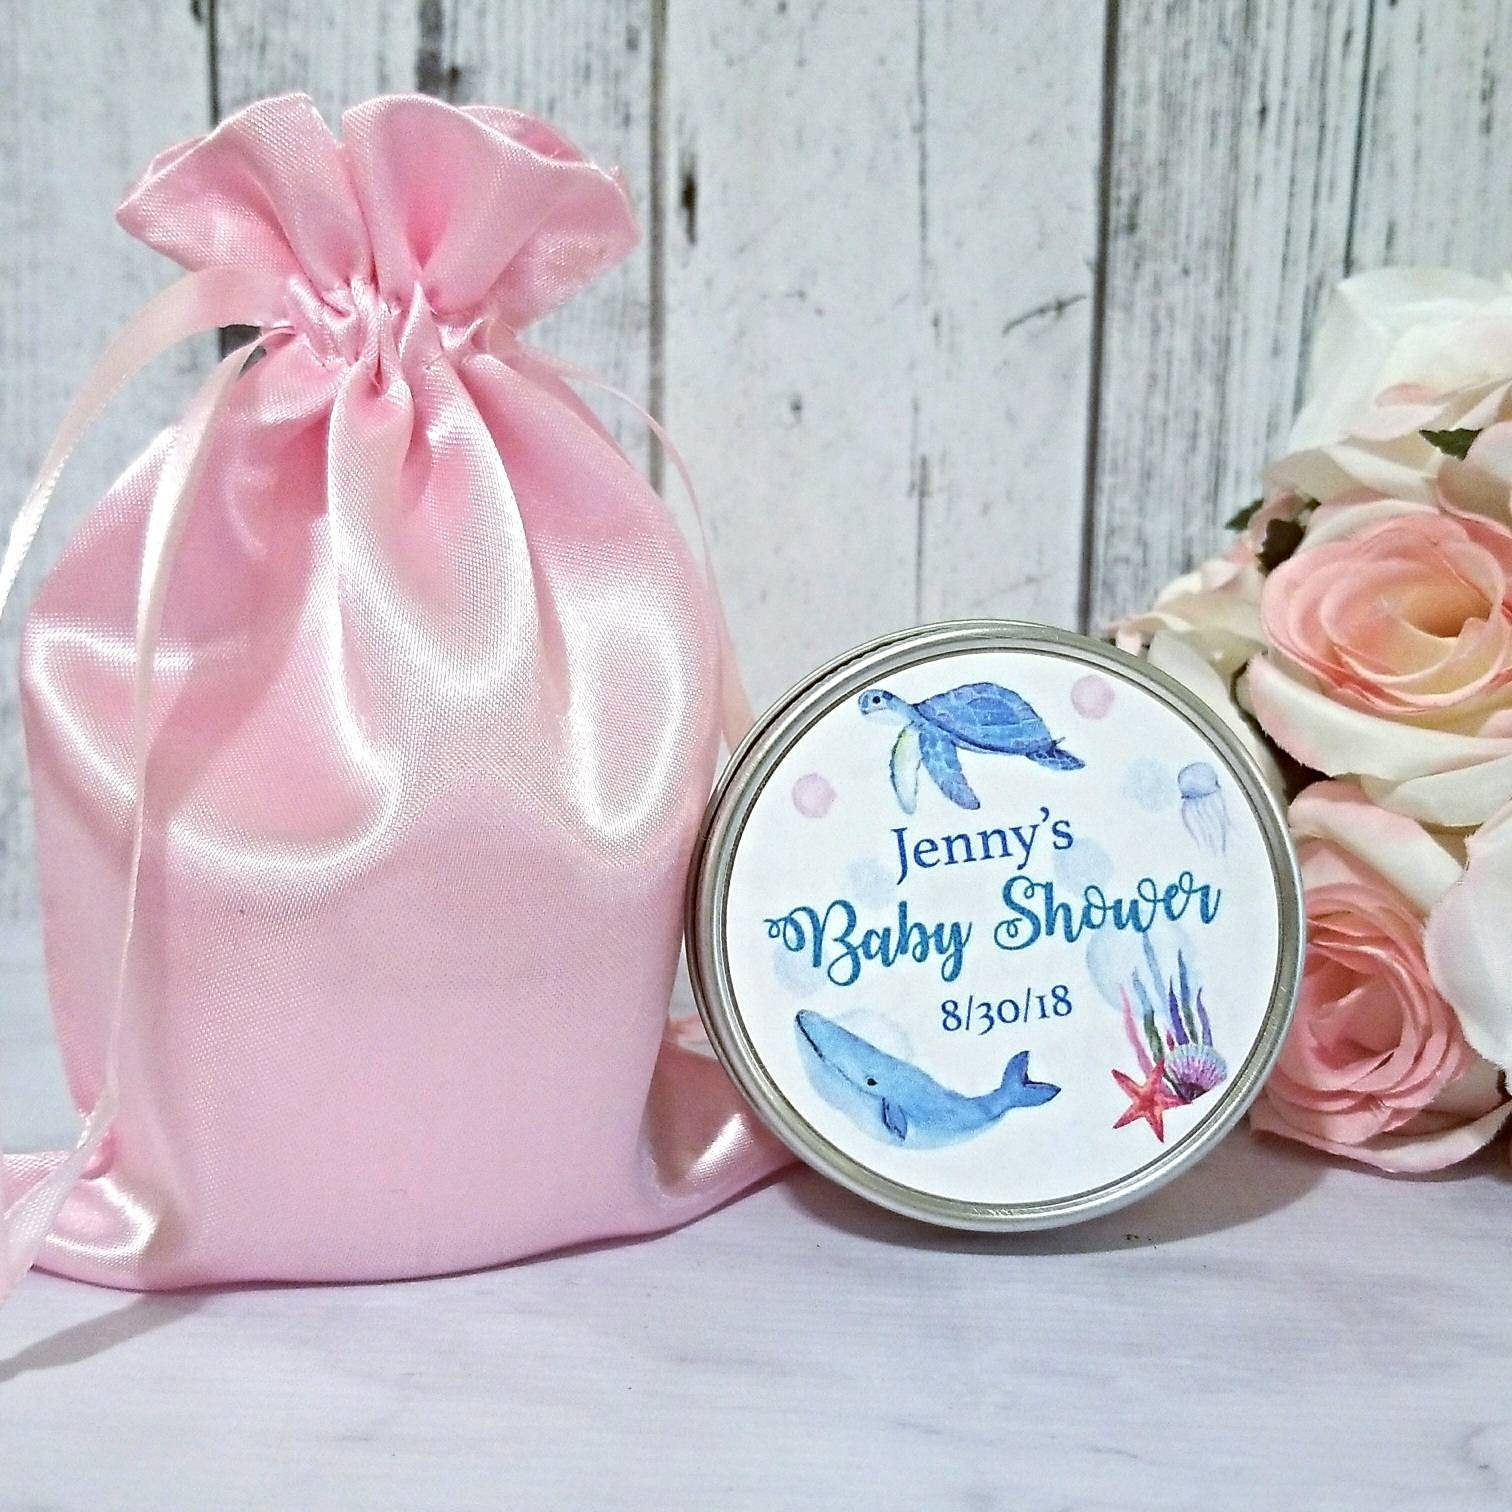 Baby Shower Candle Favors Ocean Friends Baby Shower Favors